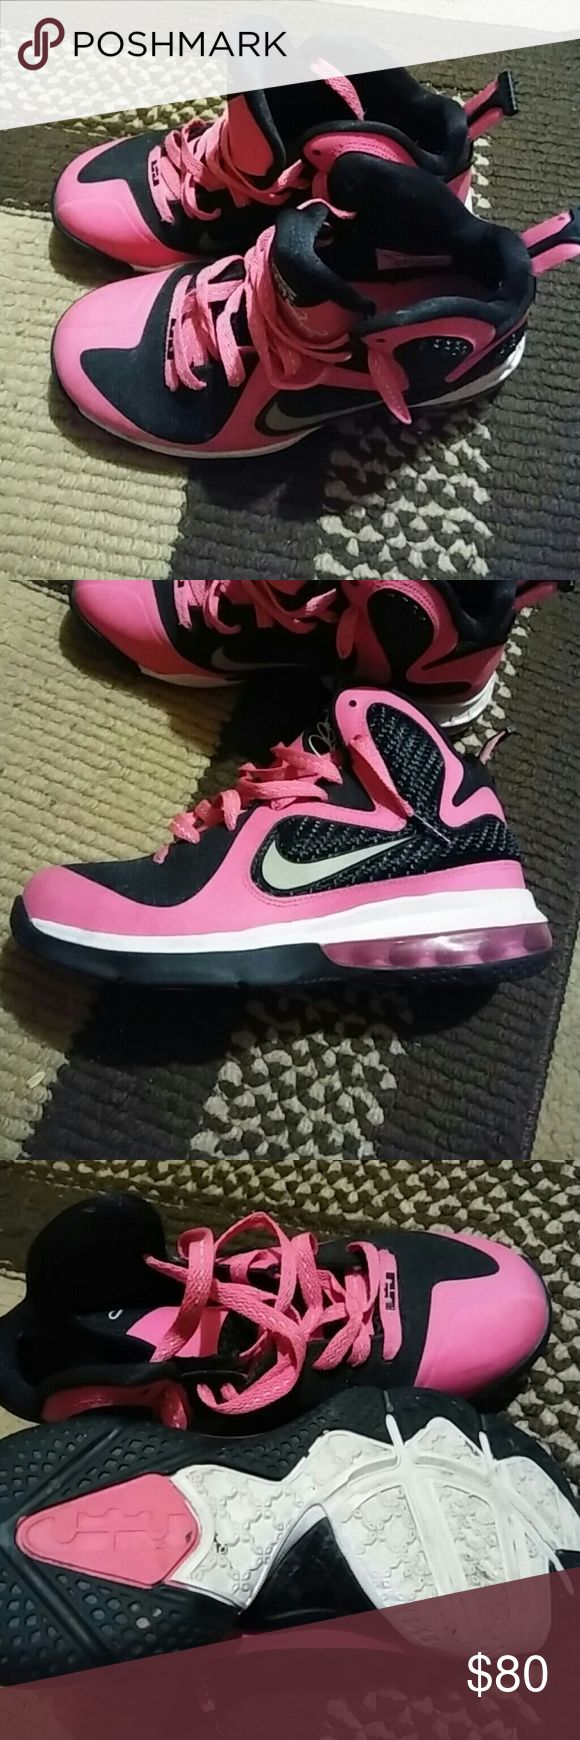 Pink lebron 4y Pink,black and silver LeBron tennis shoes perfect condition 4y Nike Shoes Sneakers